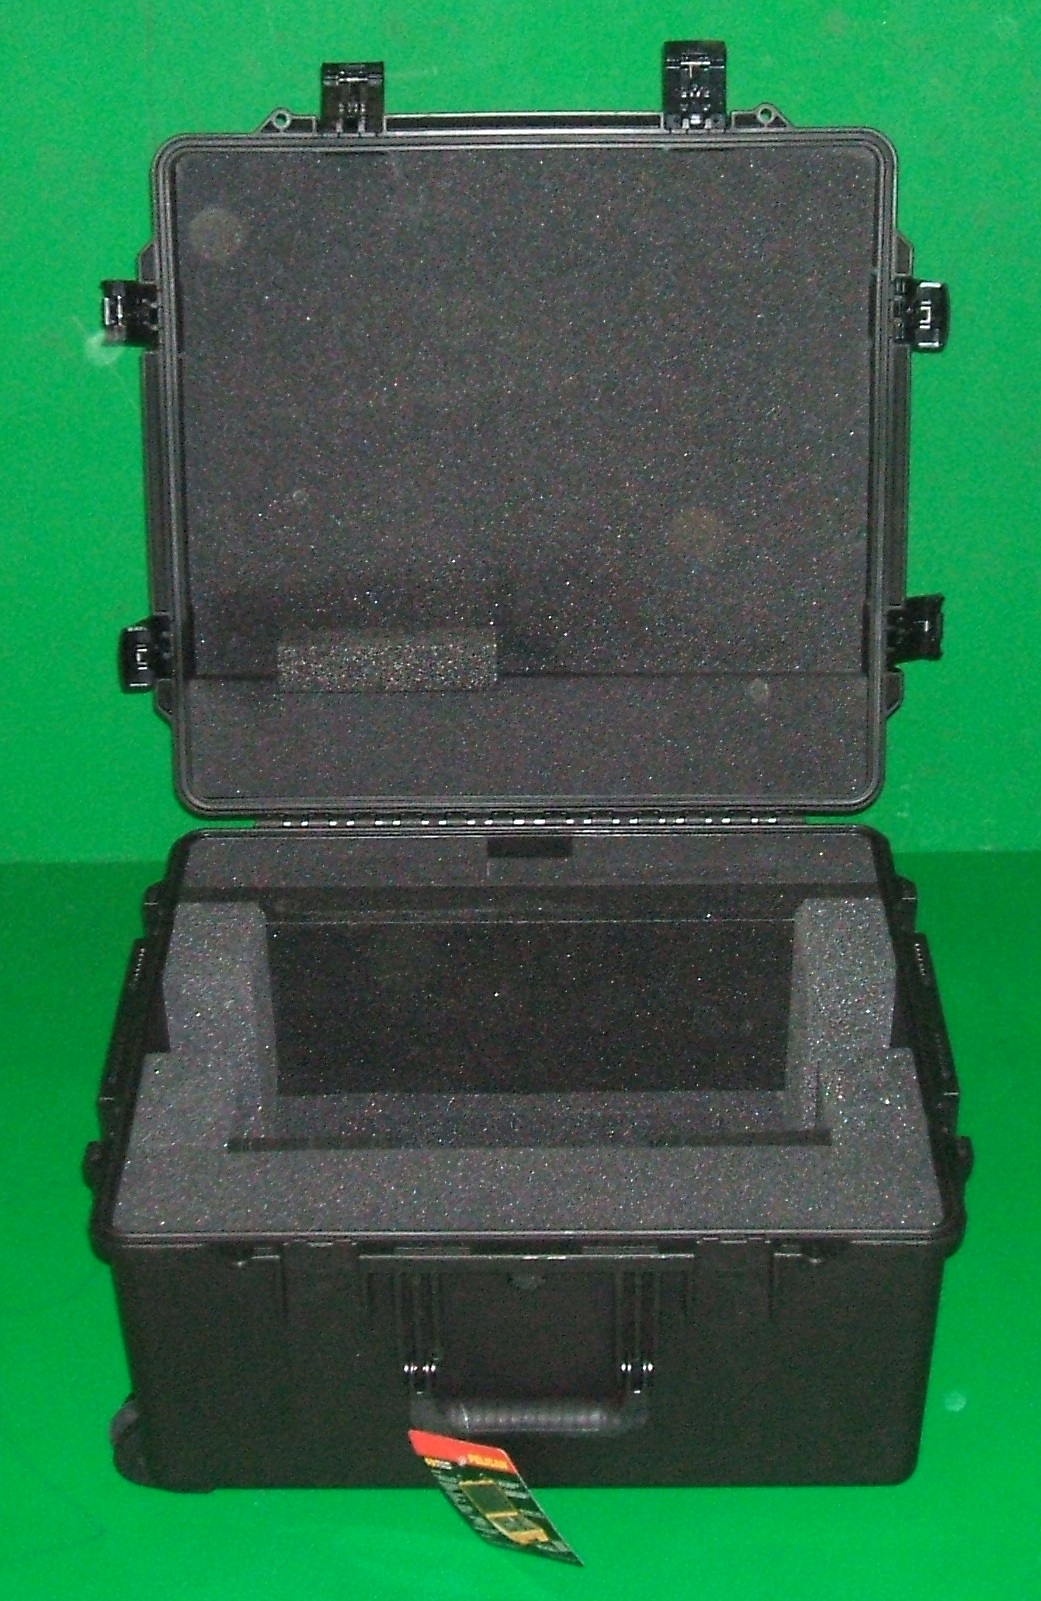 Print # 6020 - Storm iM2875 Case w/ Custom Foam Insert for (1) Barco Screen Pro II Controller By Nelson Case Corp